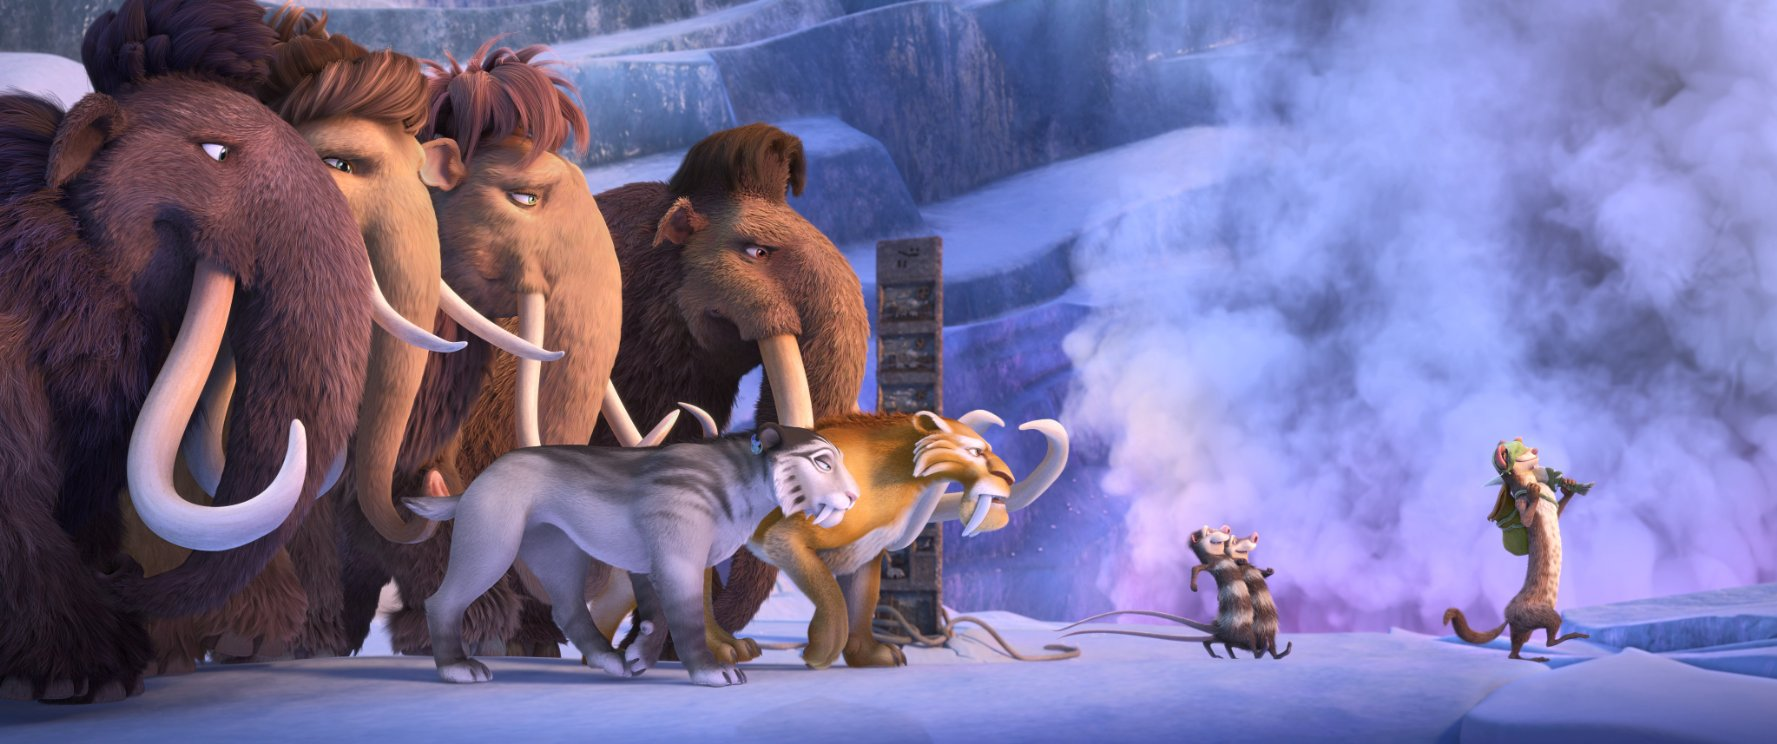 Ice Age Collision Course (2016) English DVDRIp 400MB-2